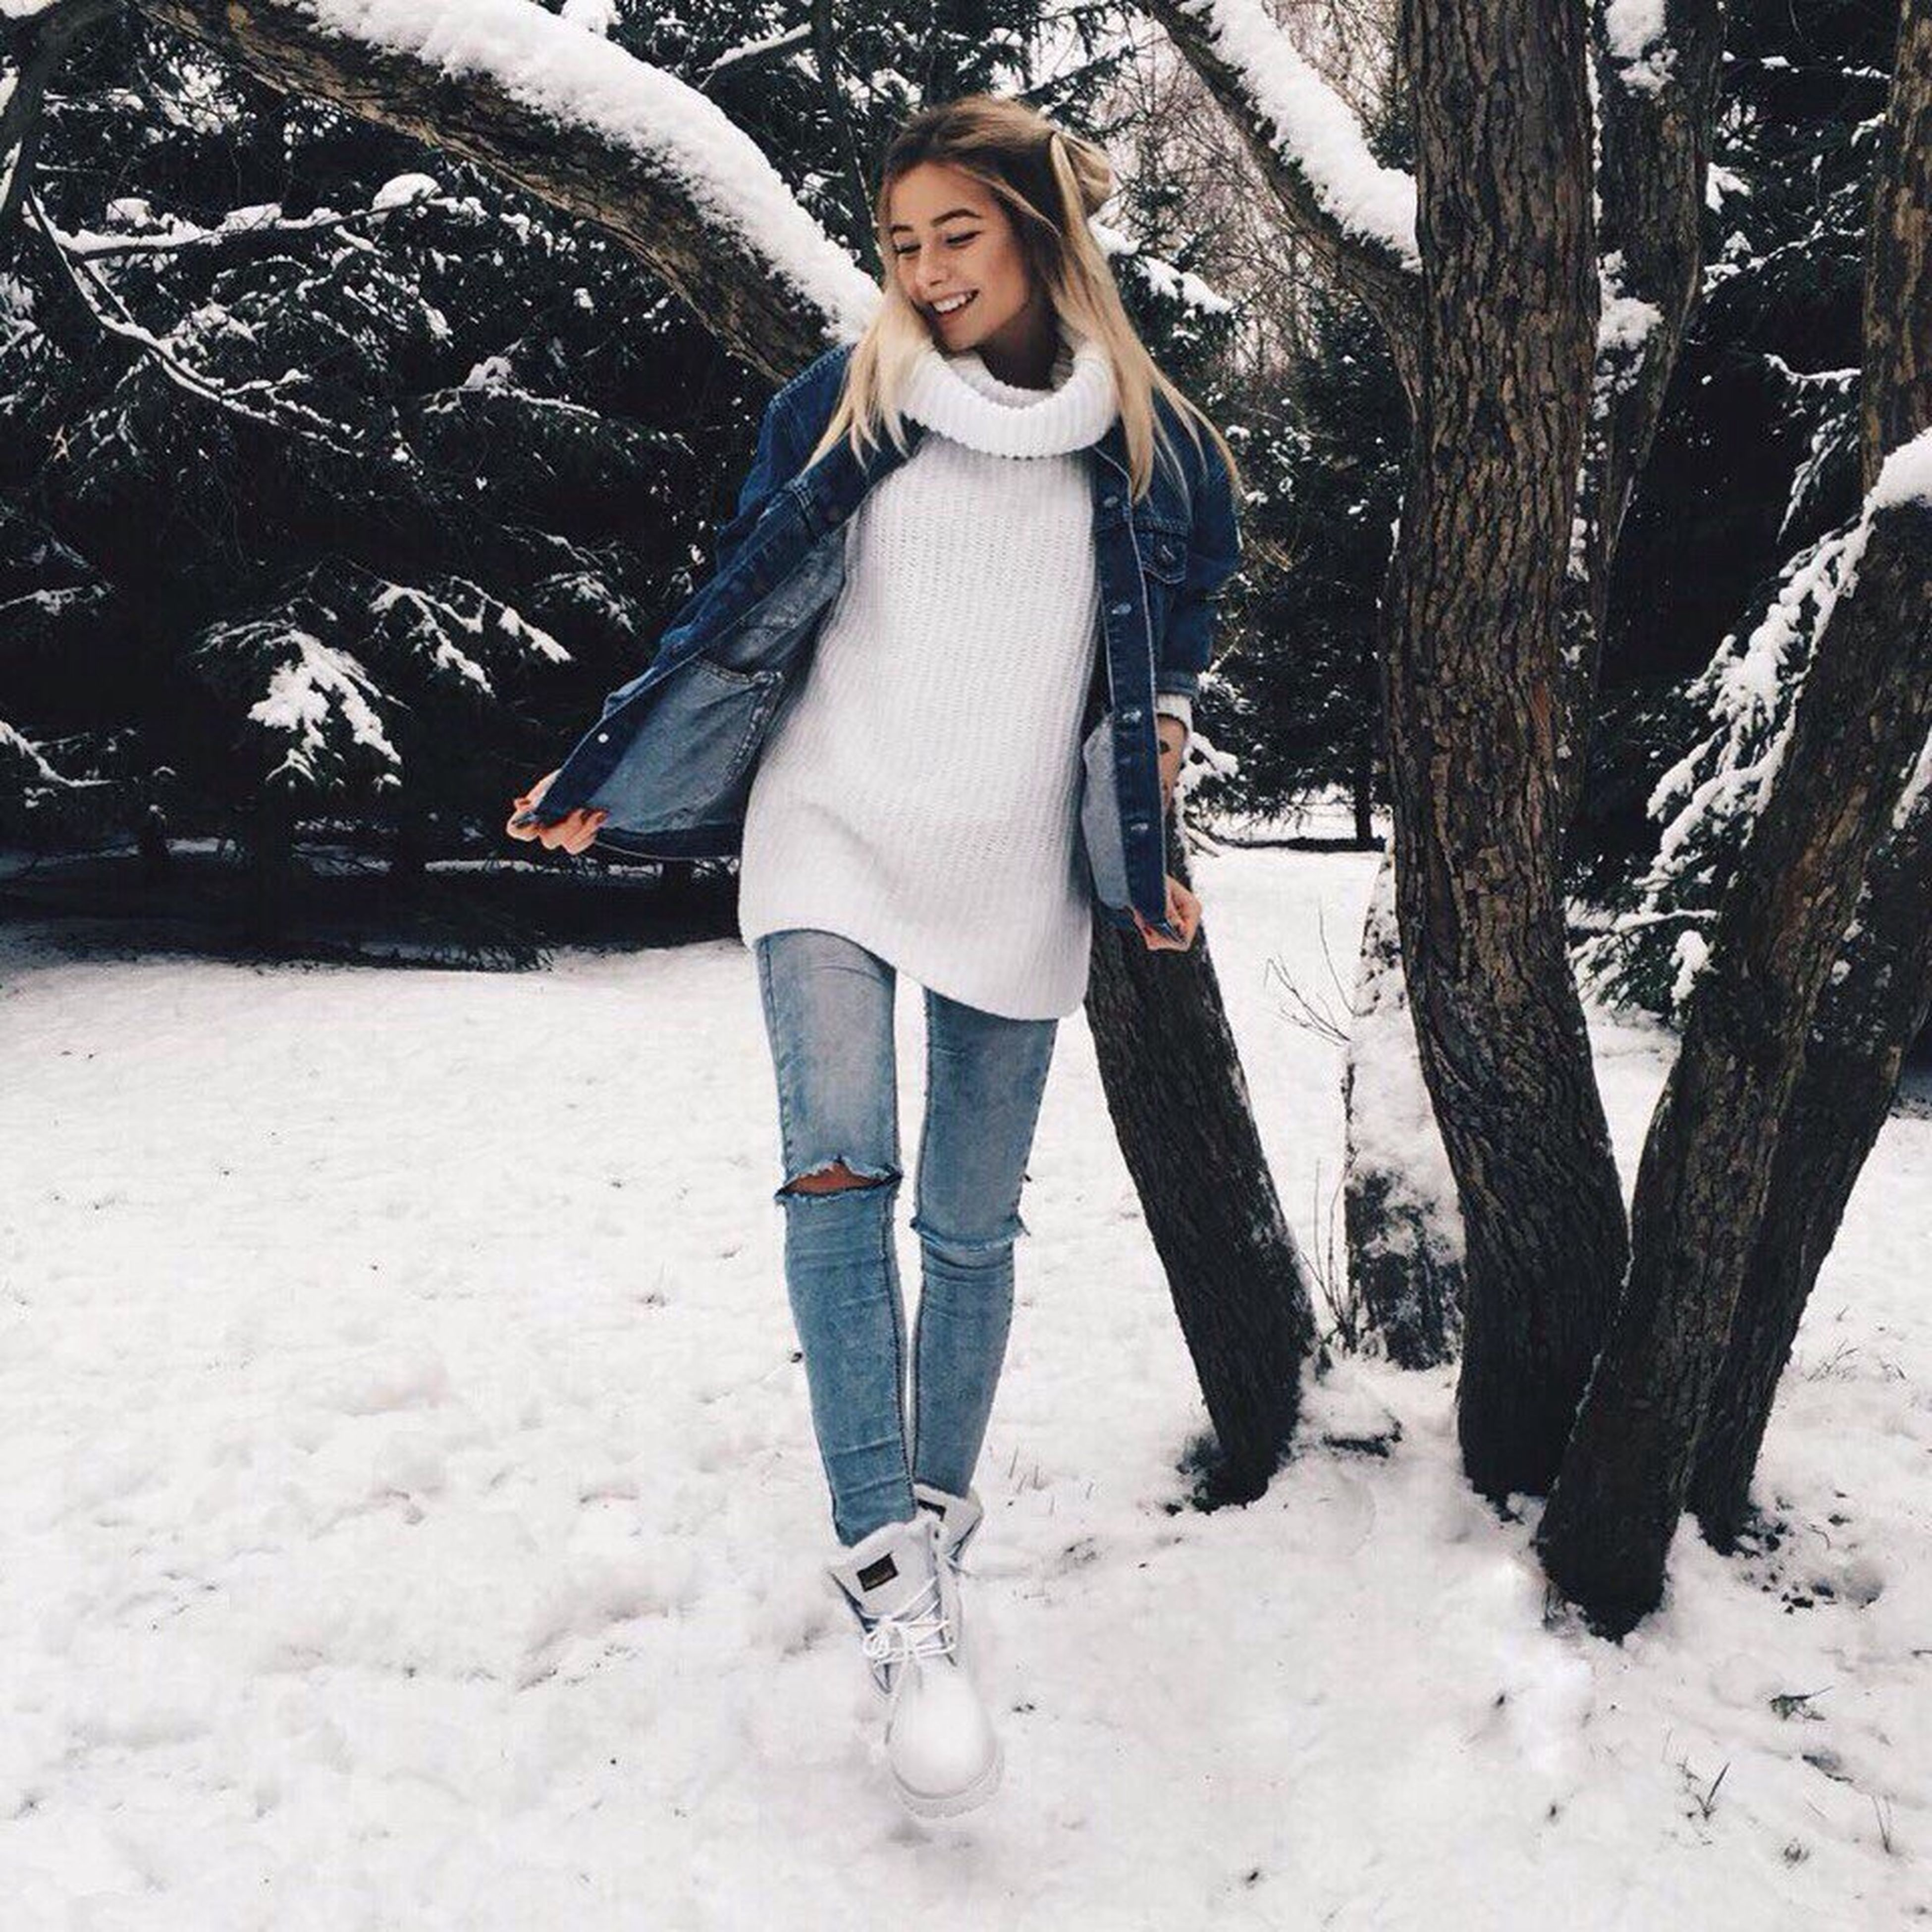 full length, one woman only, casual clothing, only women, one person, adults only, front view, tree, looking at camera, people, portrait, smiling, happiness, outdoors, beautiful woman, day, winter, one young woman only, adult, real people, nature, young adult